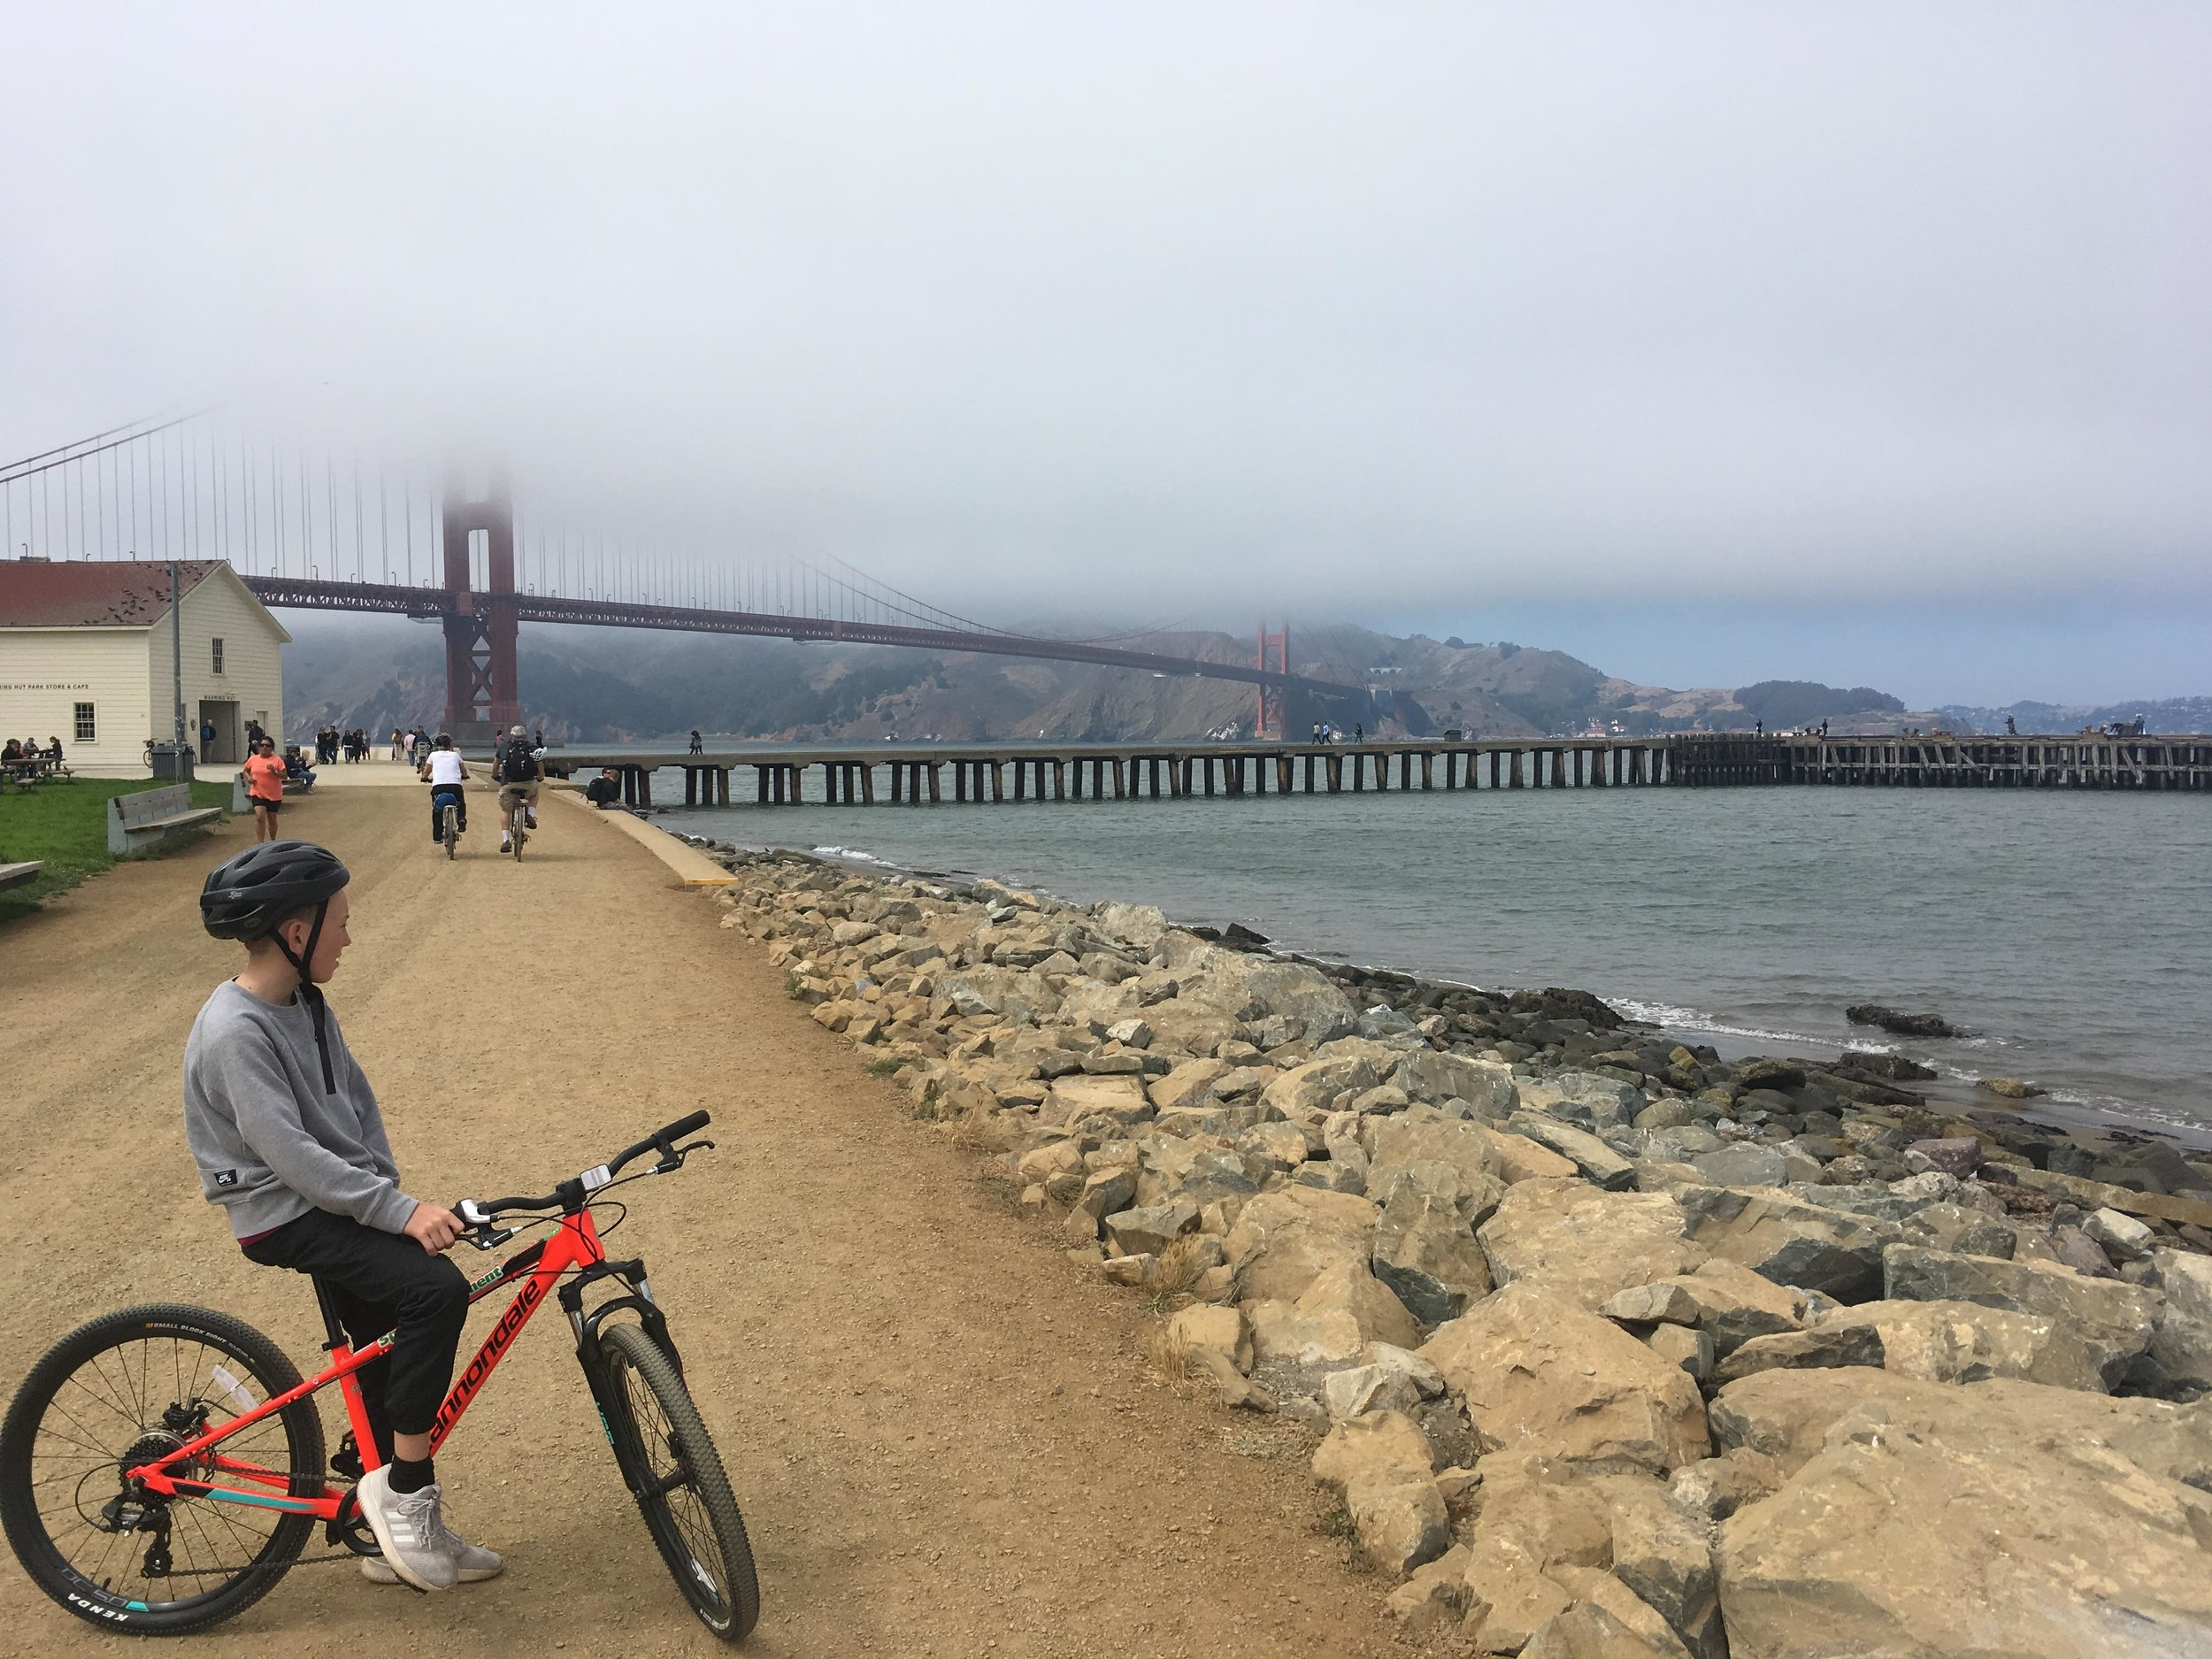 Aidan taking in the views during our bike ride across the Presidio.